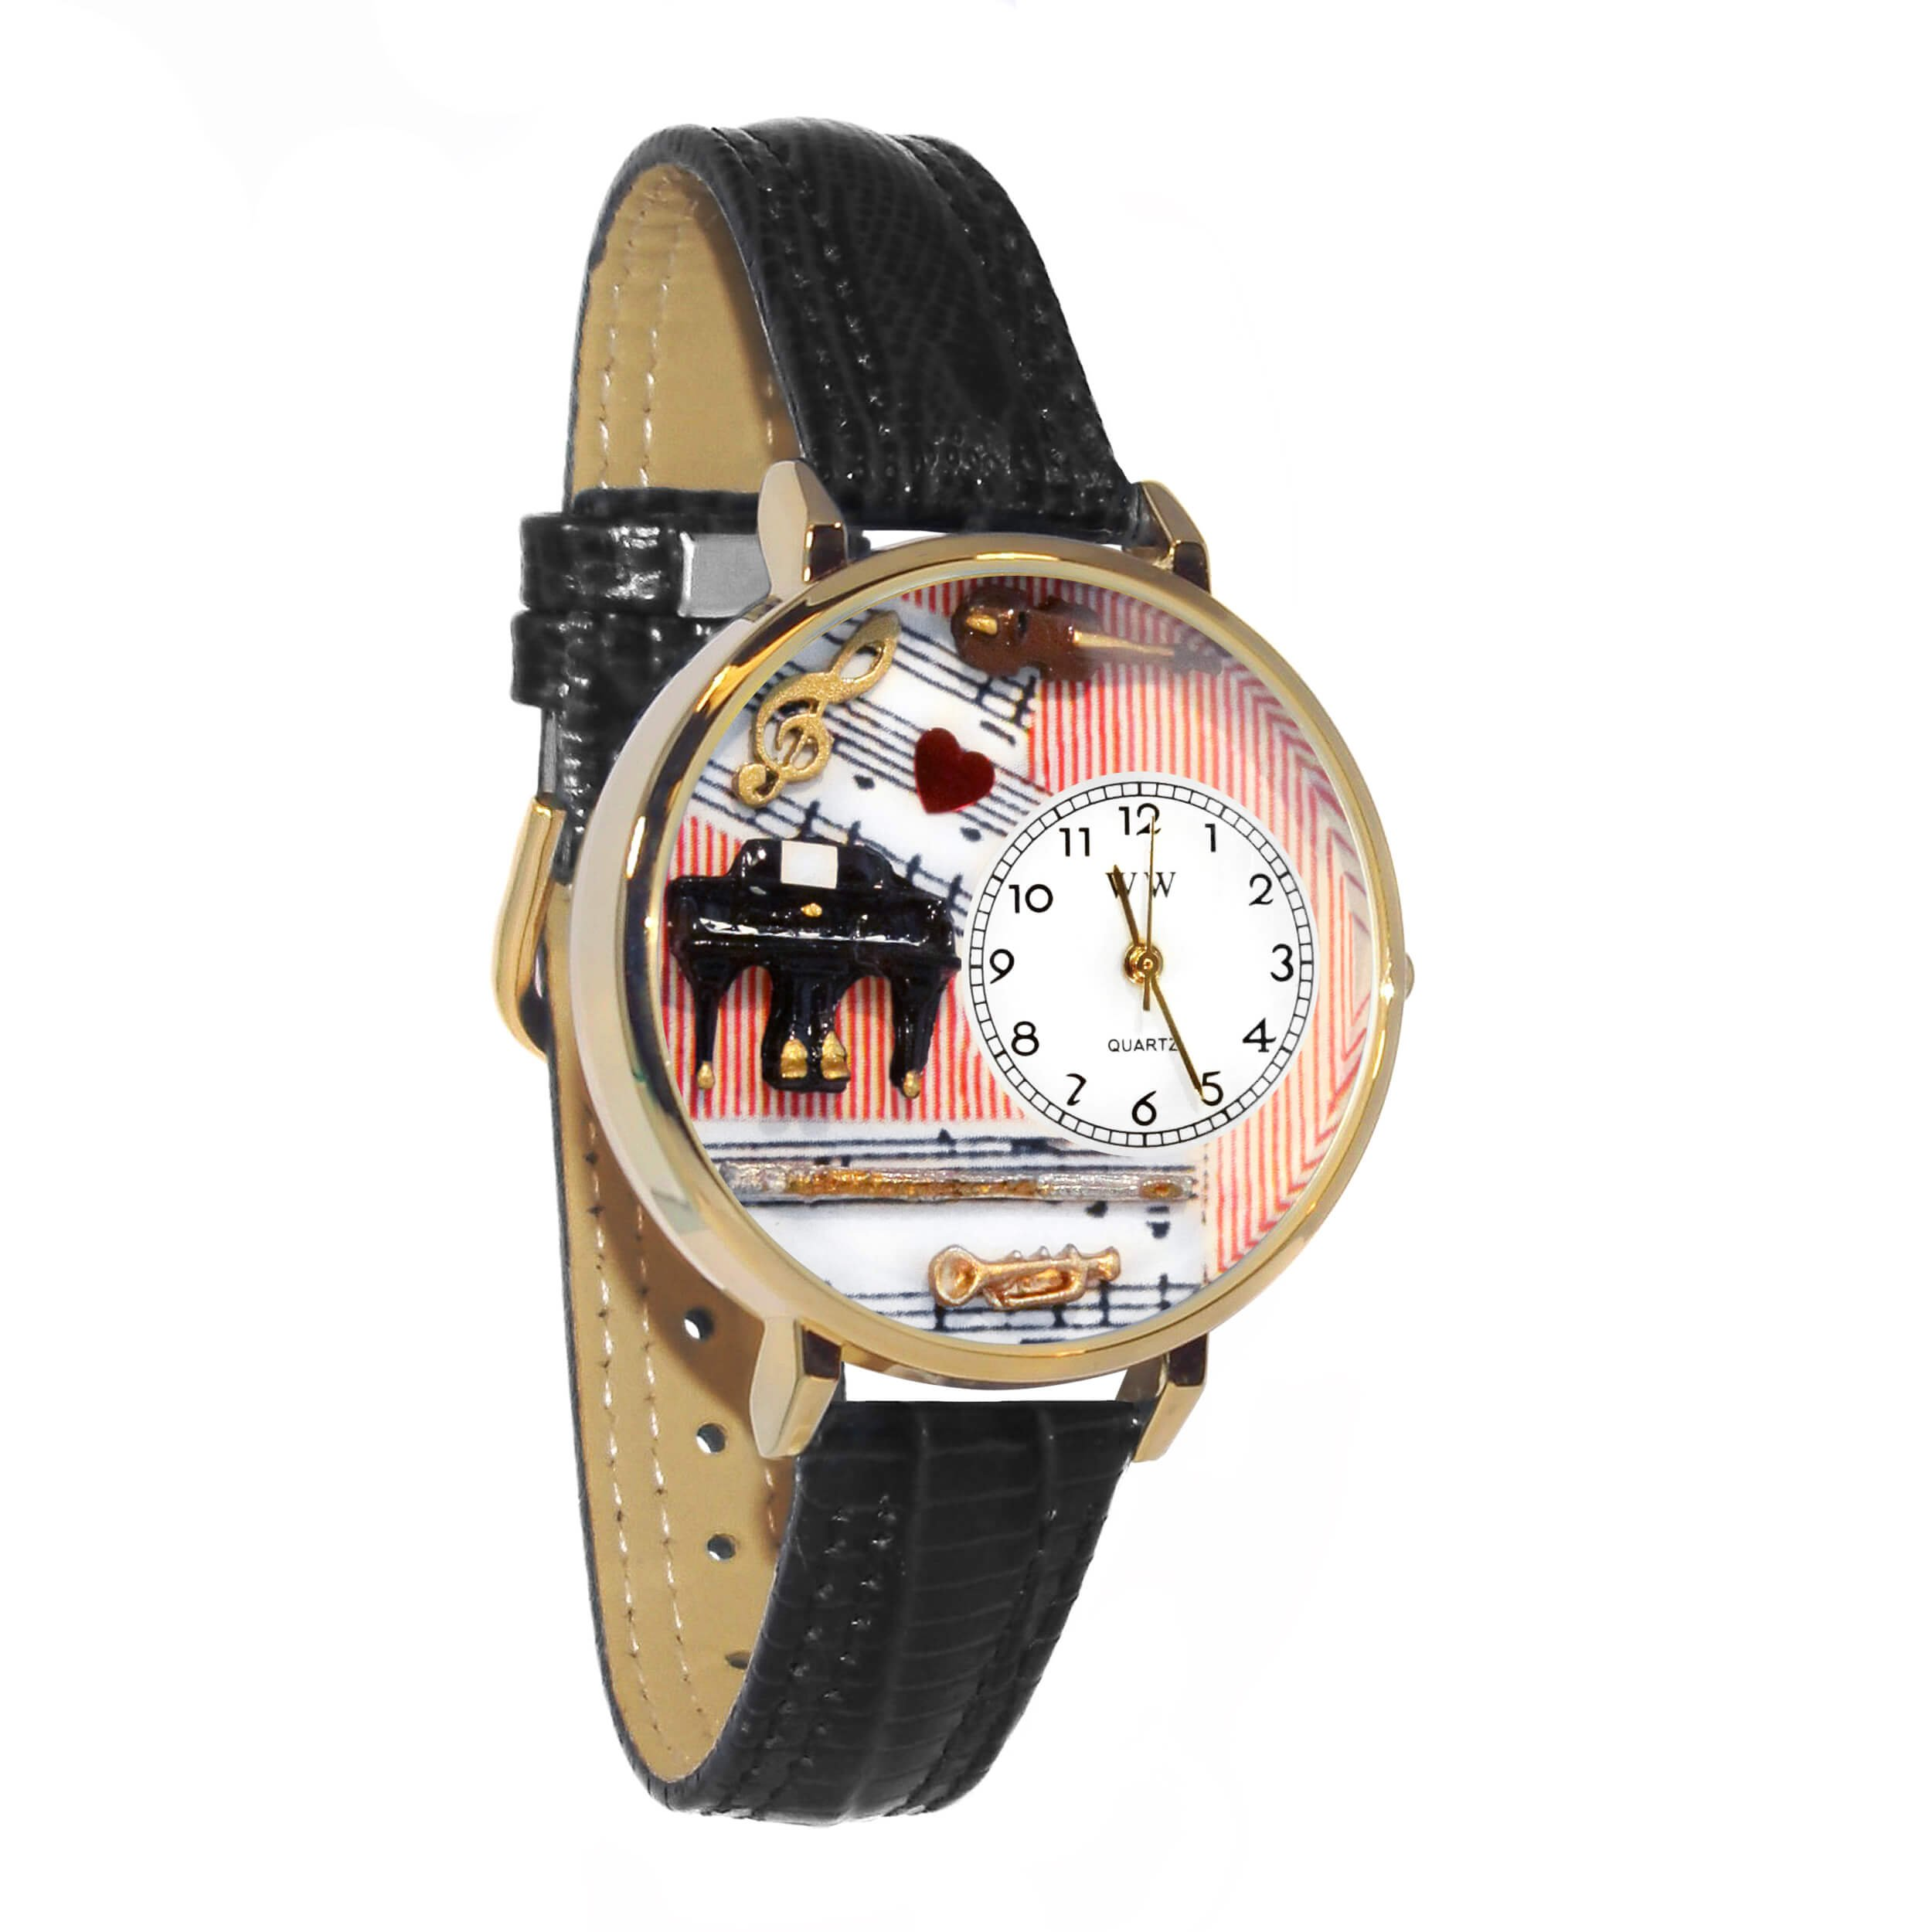 Whimsical Watches Unisex G0610001 Music Teacher Black Leather Watch